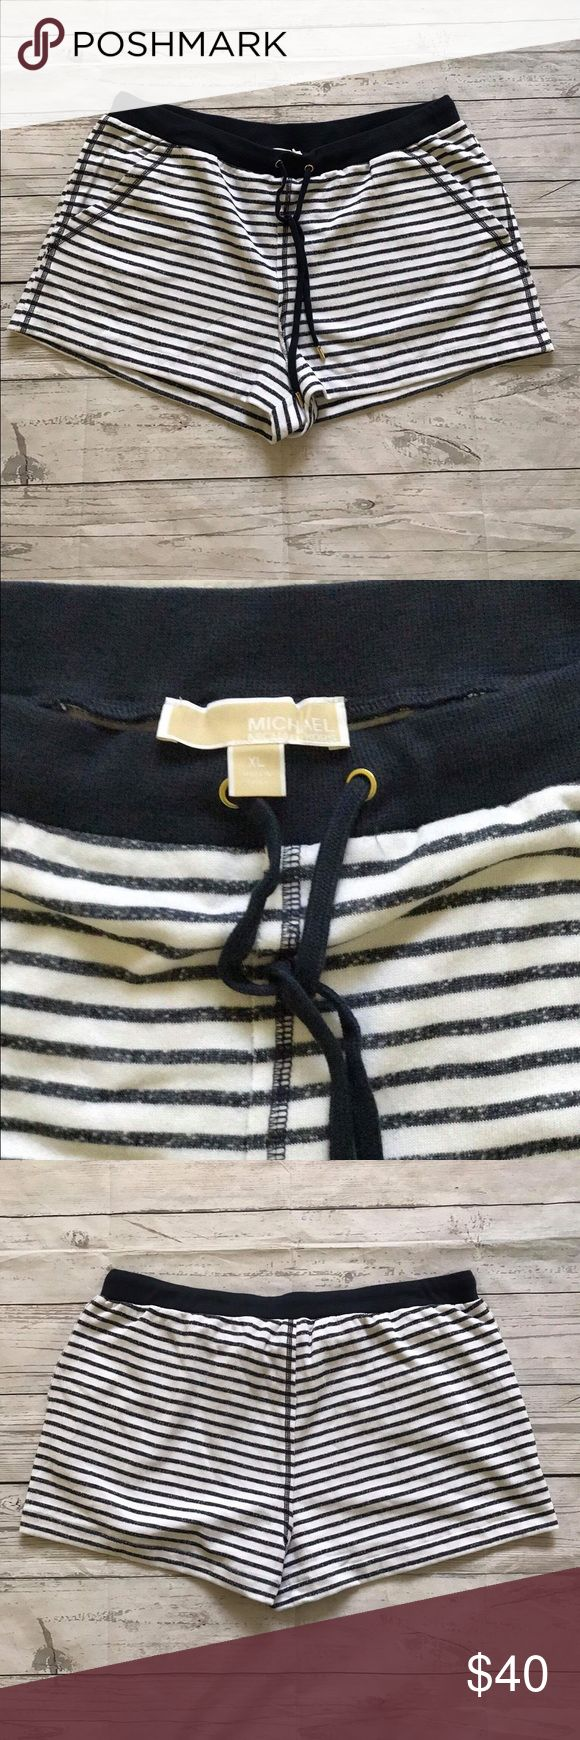 NEW!!! Michael Kors Womens Stripe Shorts Size XL •NEW!!! Michael Kors Womens Stripe Rib Waistband Shorts Size XL A27 •Drawstring cord at waist. •Featured in White/New Navy •Machine wash cold gentle cycle. •50% Cotton/50% Polyester. •Imported. Michael Kors Shorts